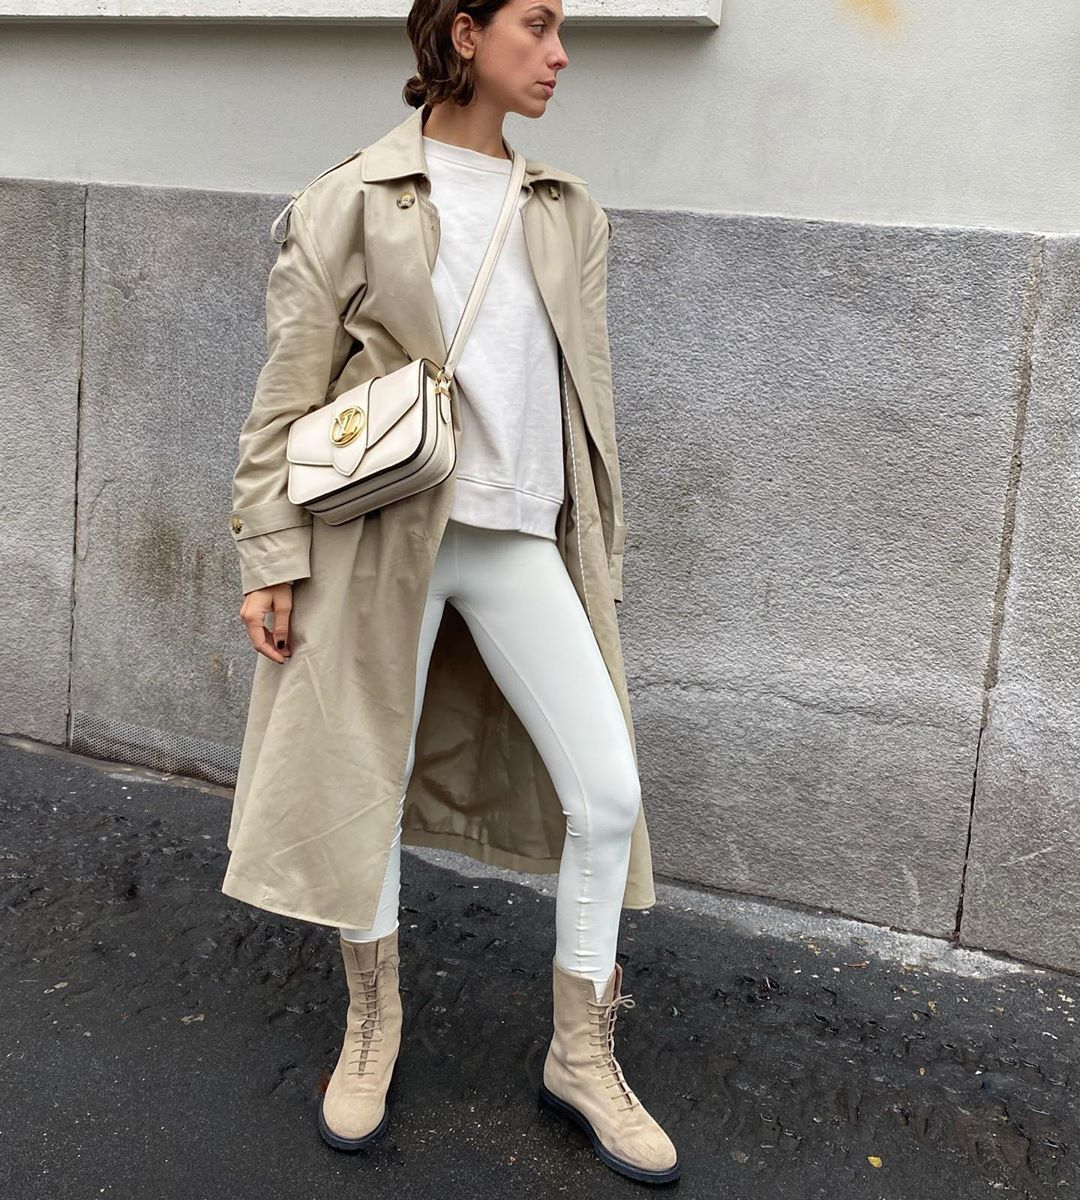 erika-boldrin-sweatshirt-leggings-trench-outfit-instagram